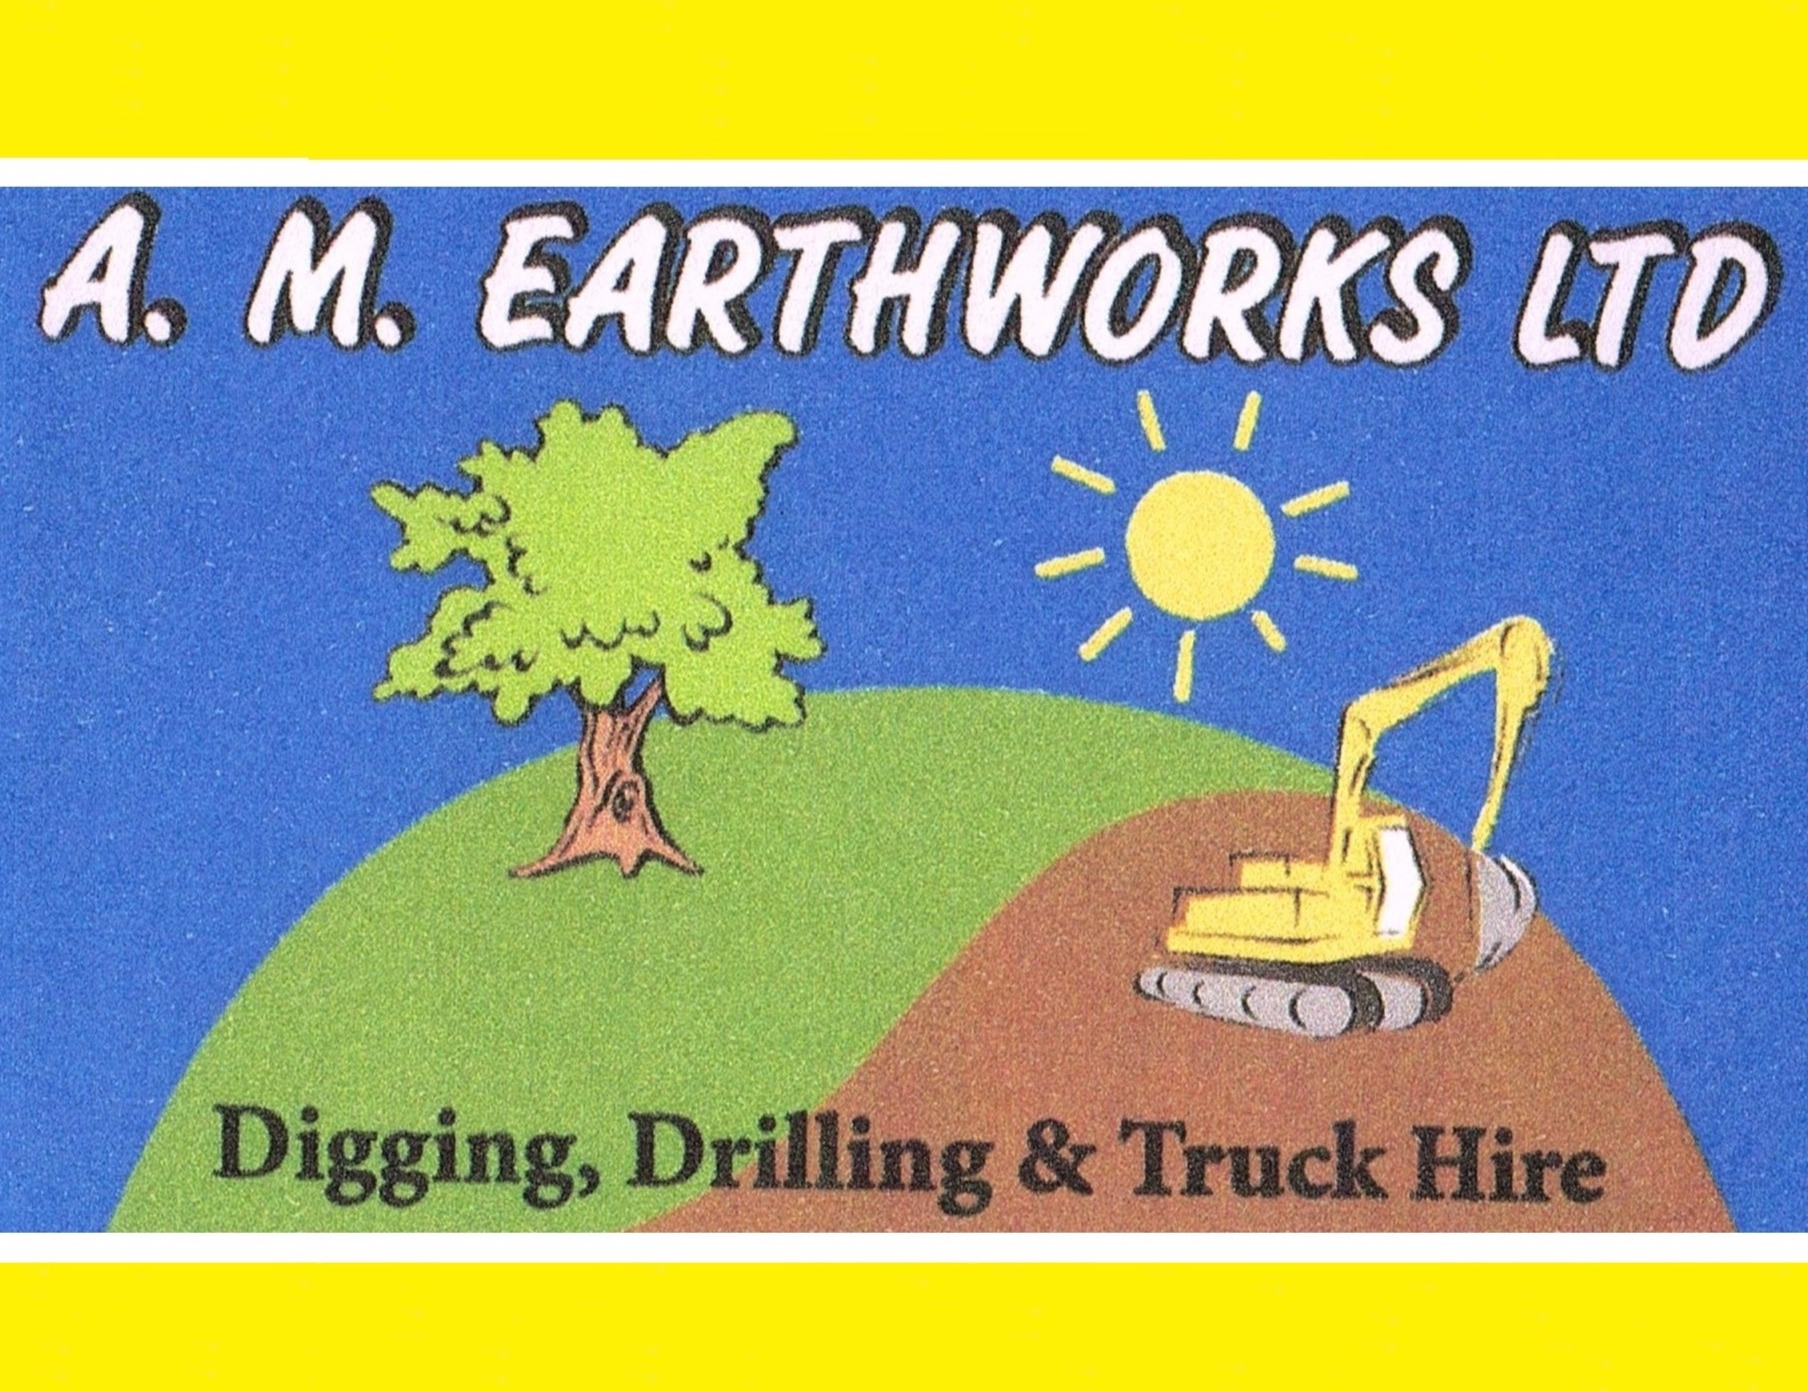 A M Earthworks Ltd